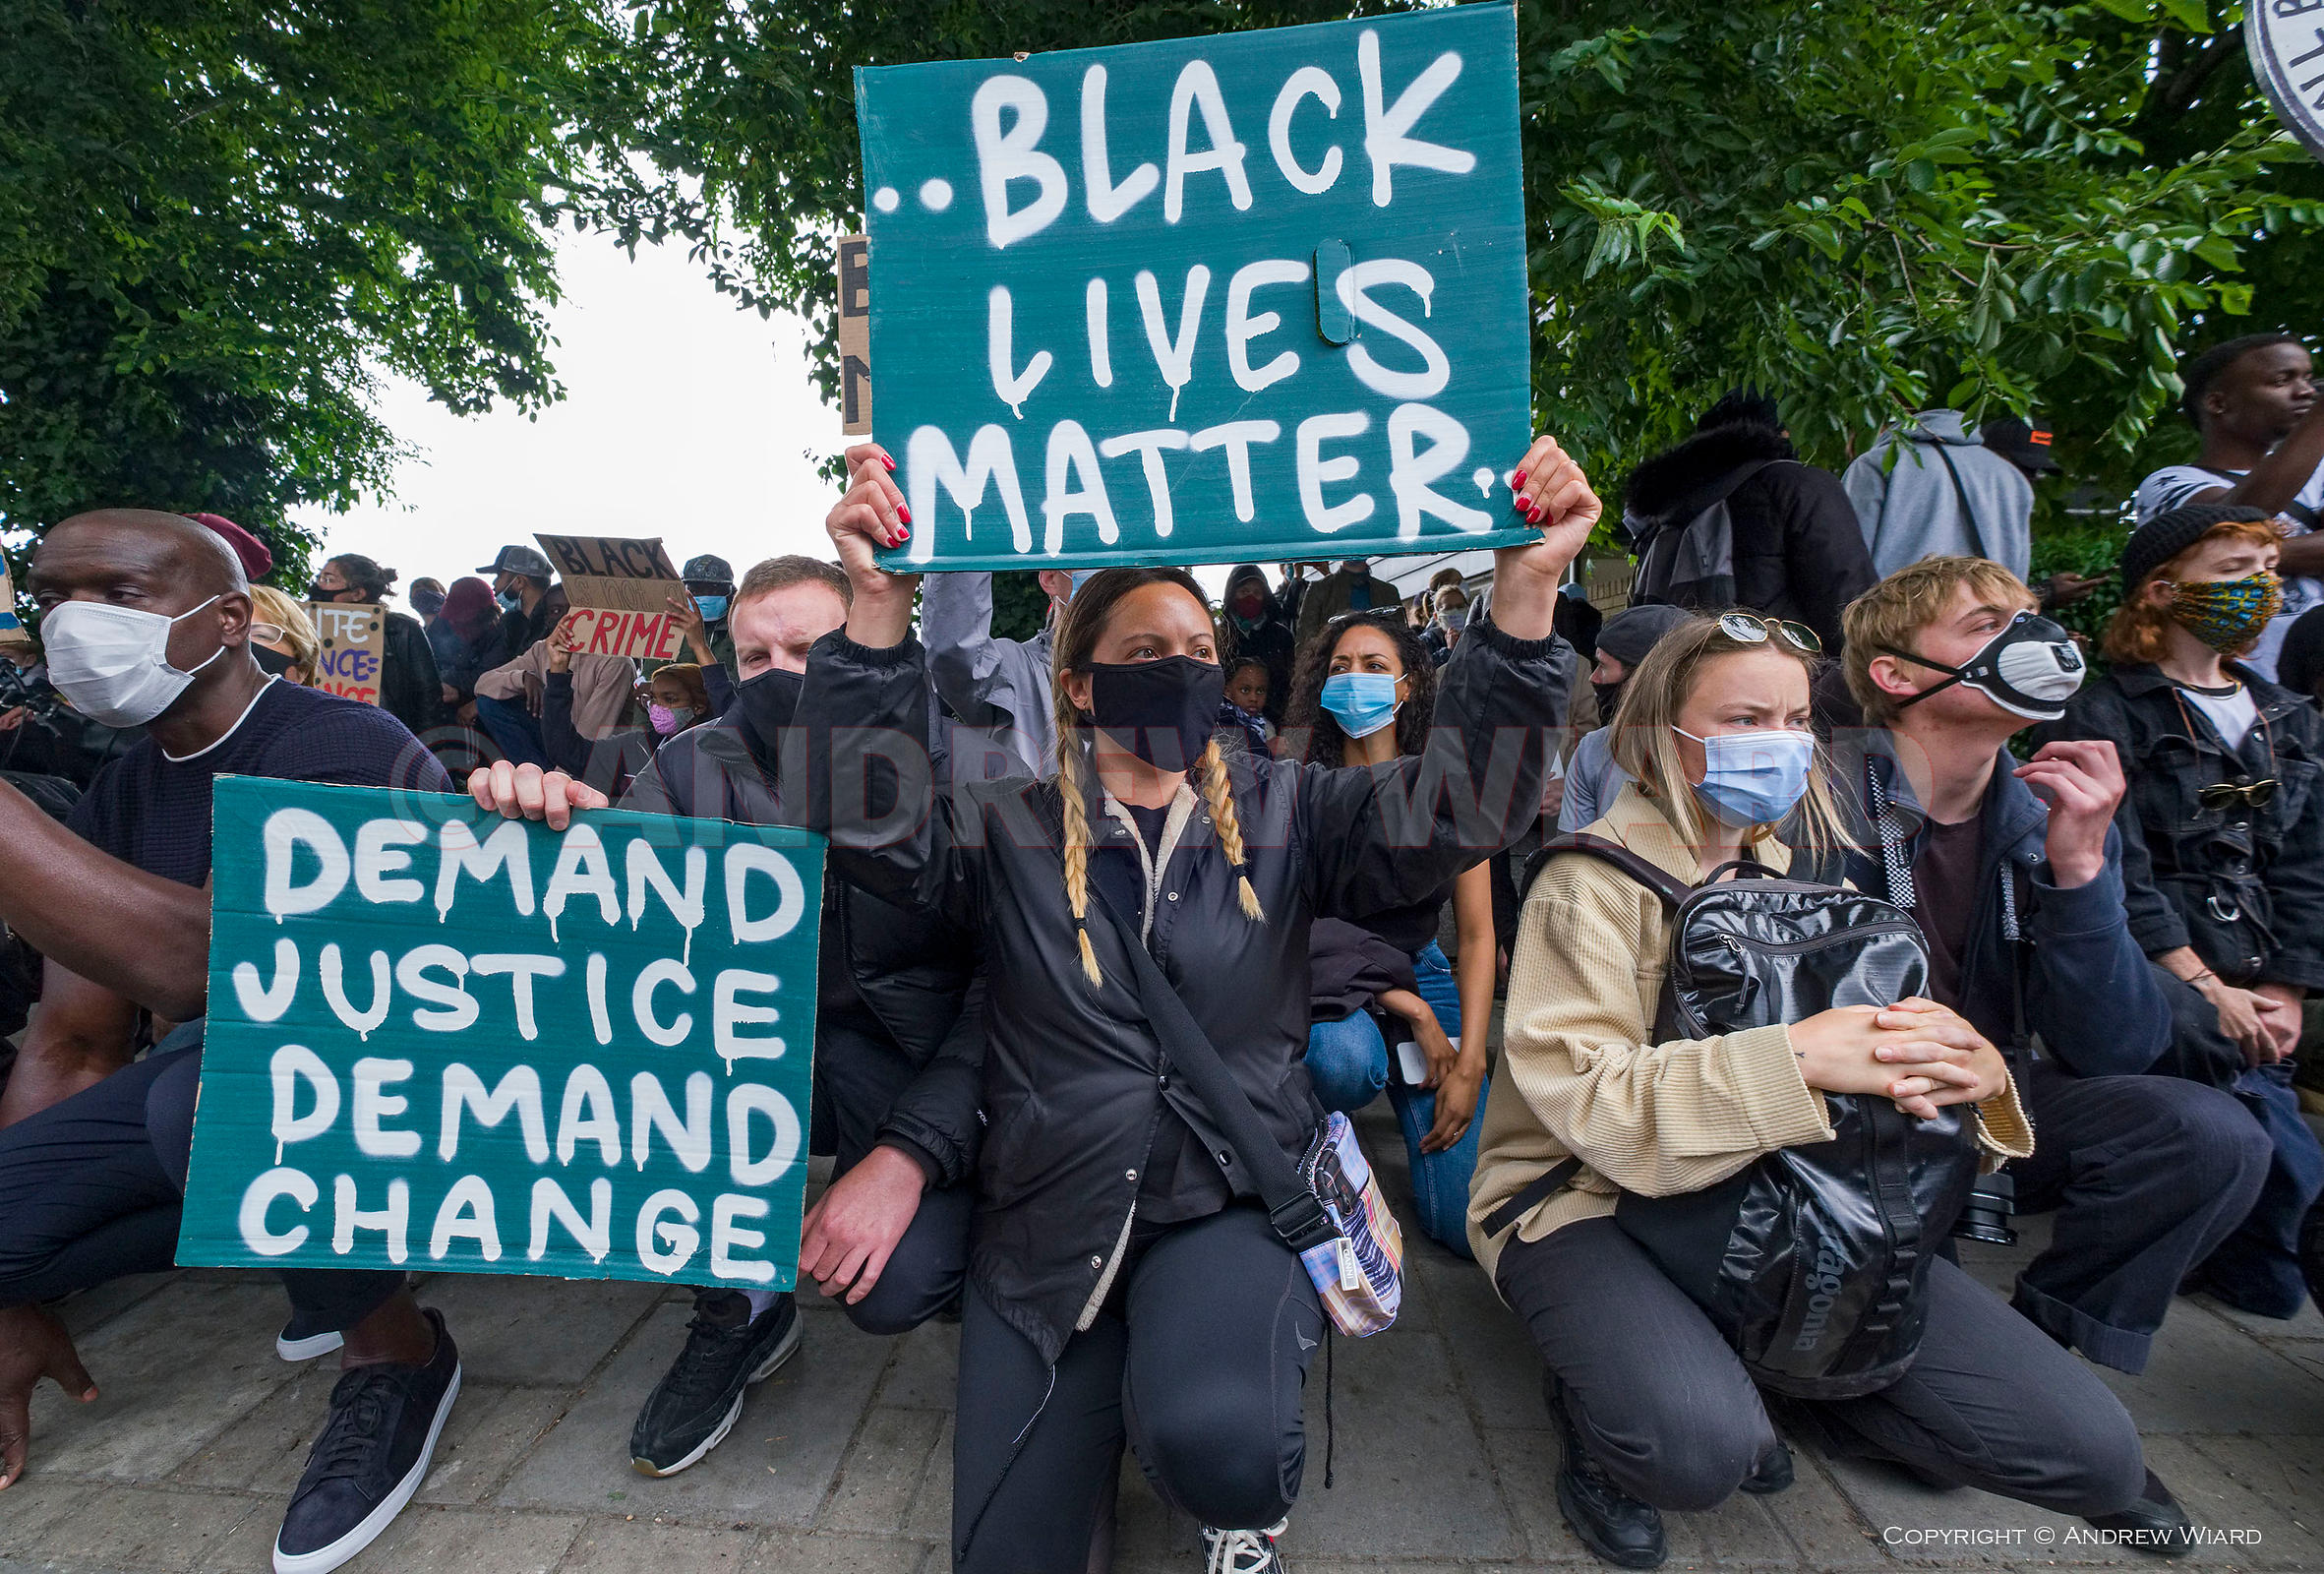 Black Lives Matter demonstration against racial discrimination and police brutality following the death of George Floyd in Mi...